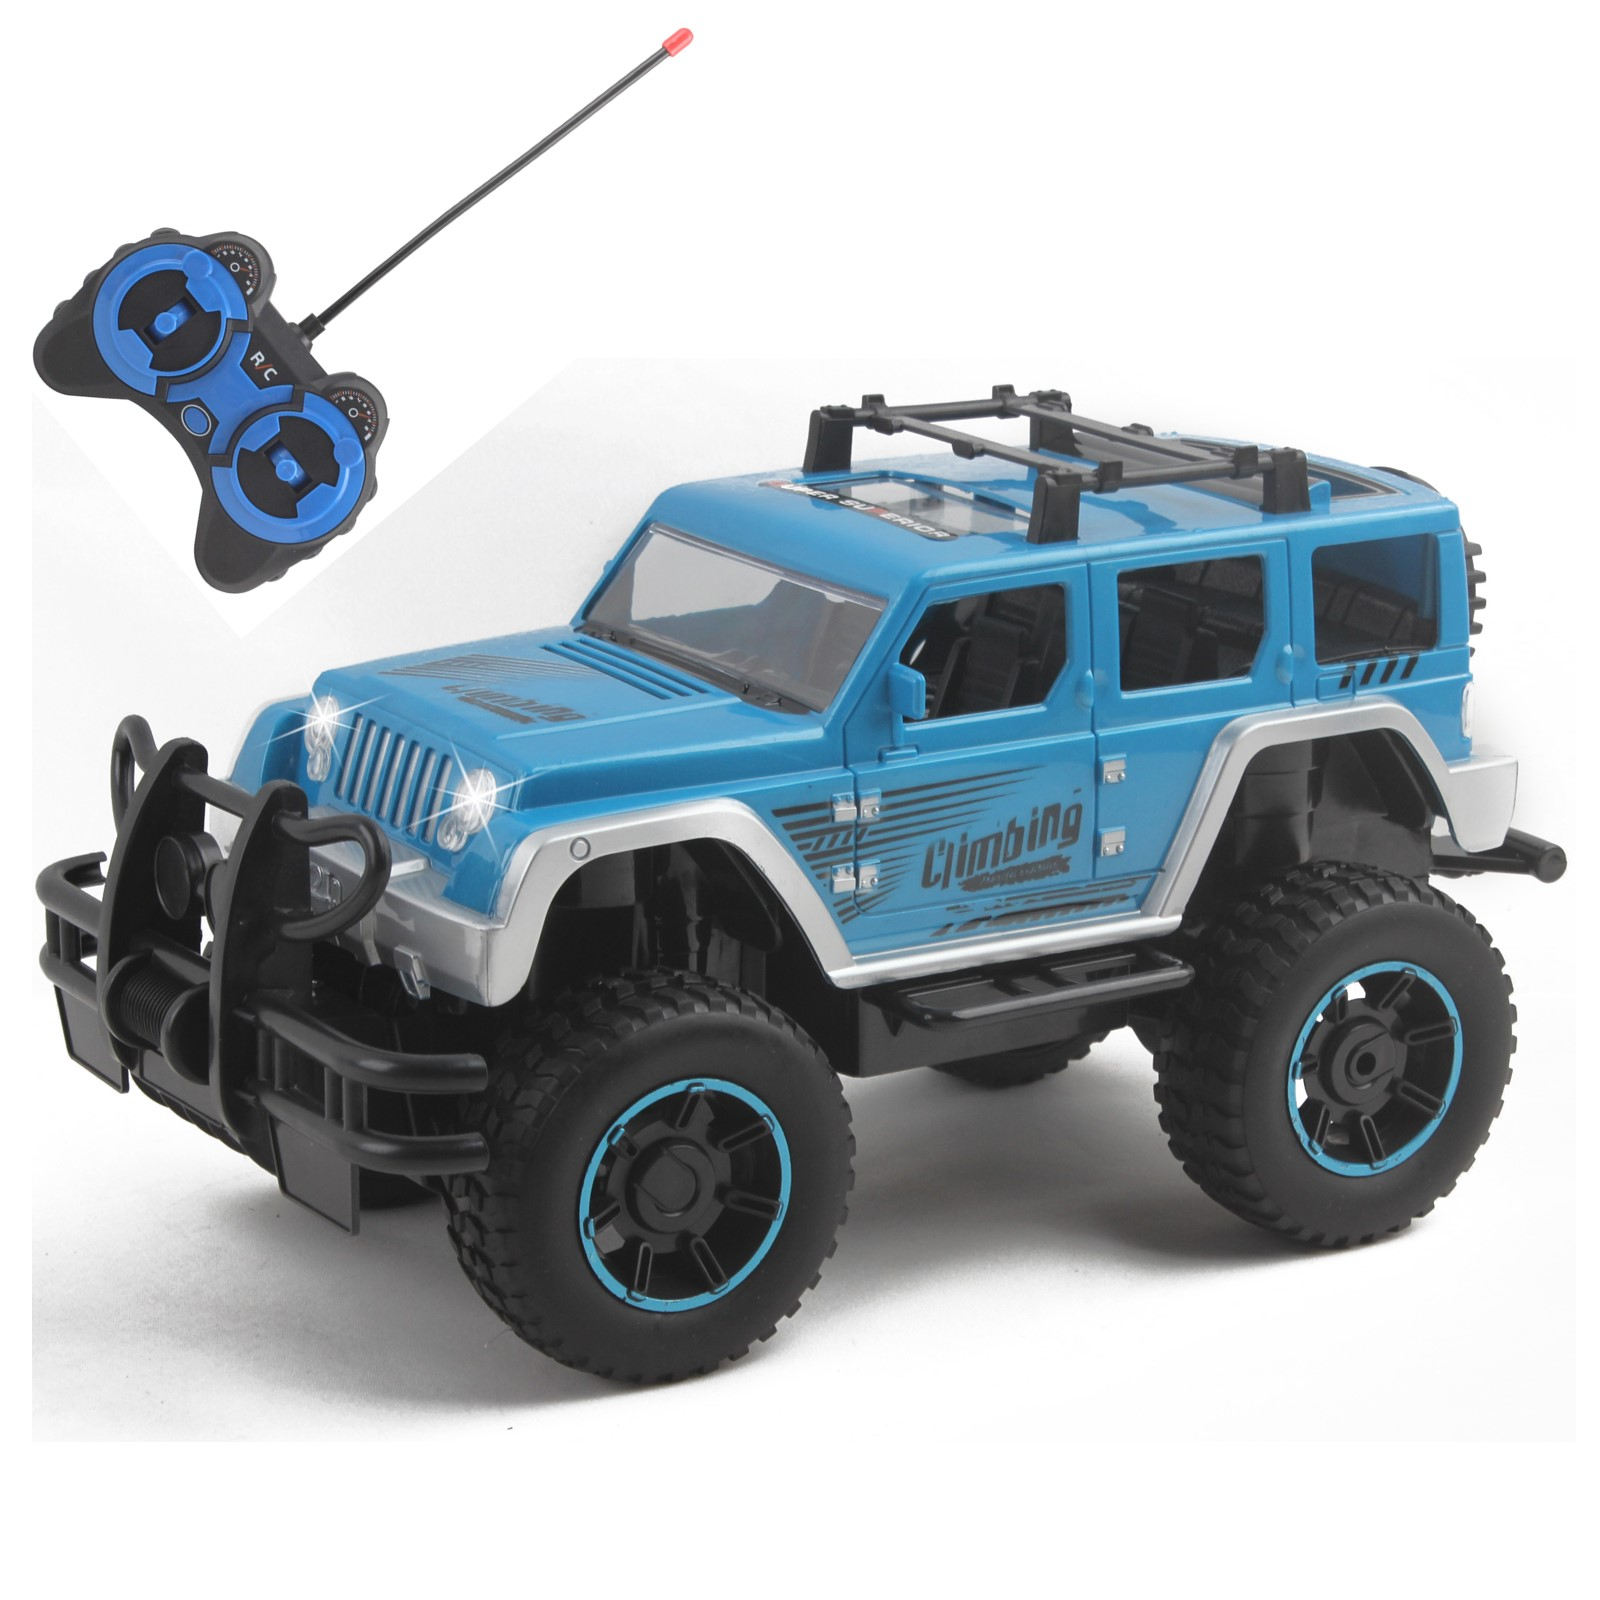 Vokodo RC Truck 12 Inch 1:12 Scale With LED Headlights Big Tires Full Function Off-Road SUV Remote Control Indoor Outdoor Car Ready To Run Electric Kids Toy Vehicle Great Gift Children Boy Girl (Blue)